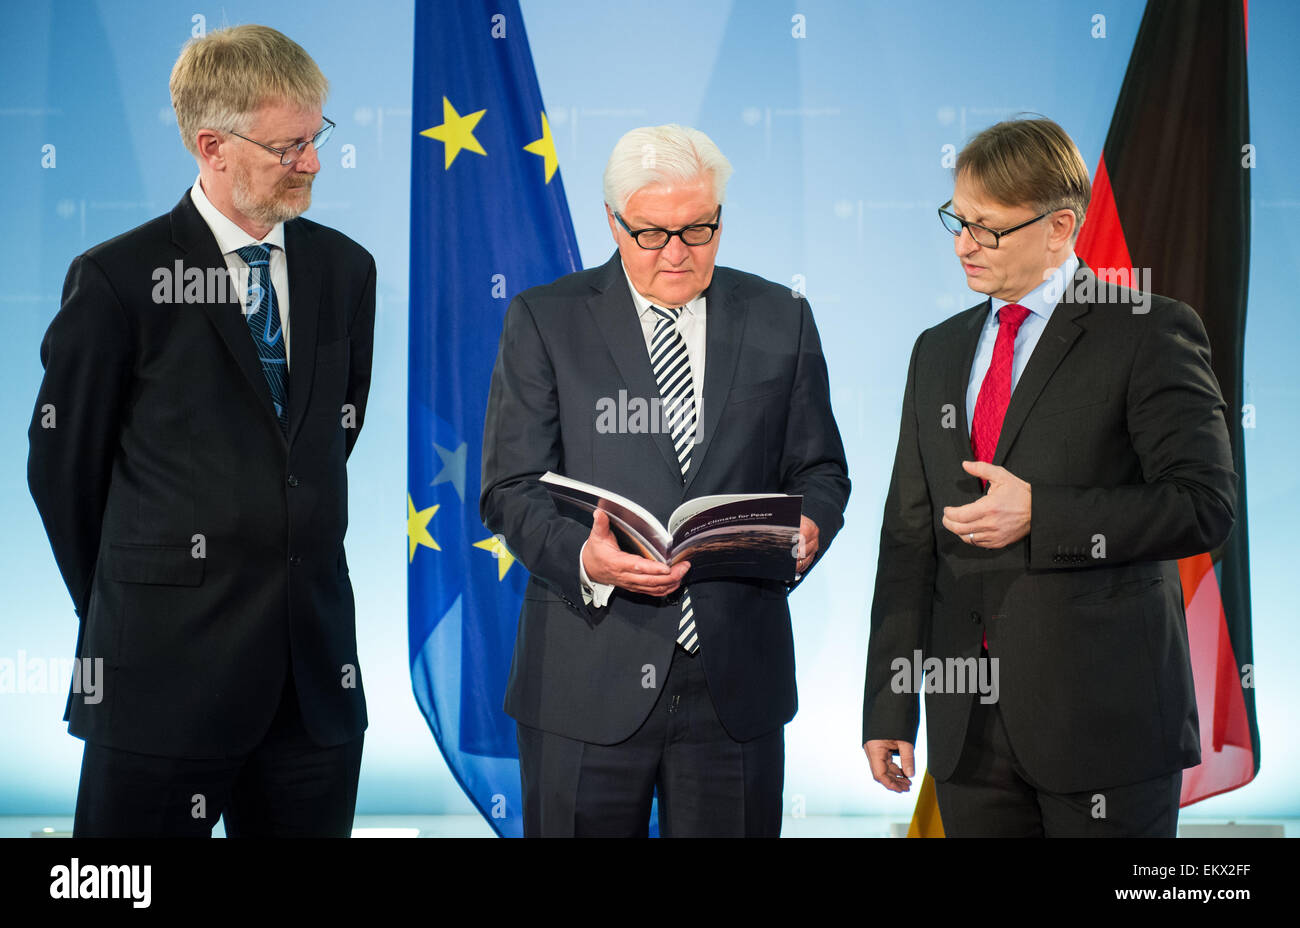 German Foreign Minister Frank-Walter Steinmeier (SPD, C) is presented with a study on the impact of climate change - Stock Image